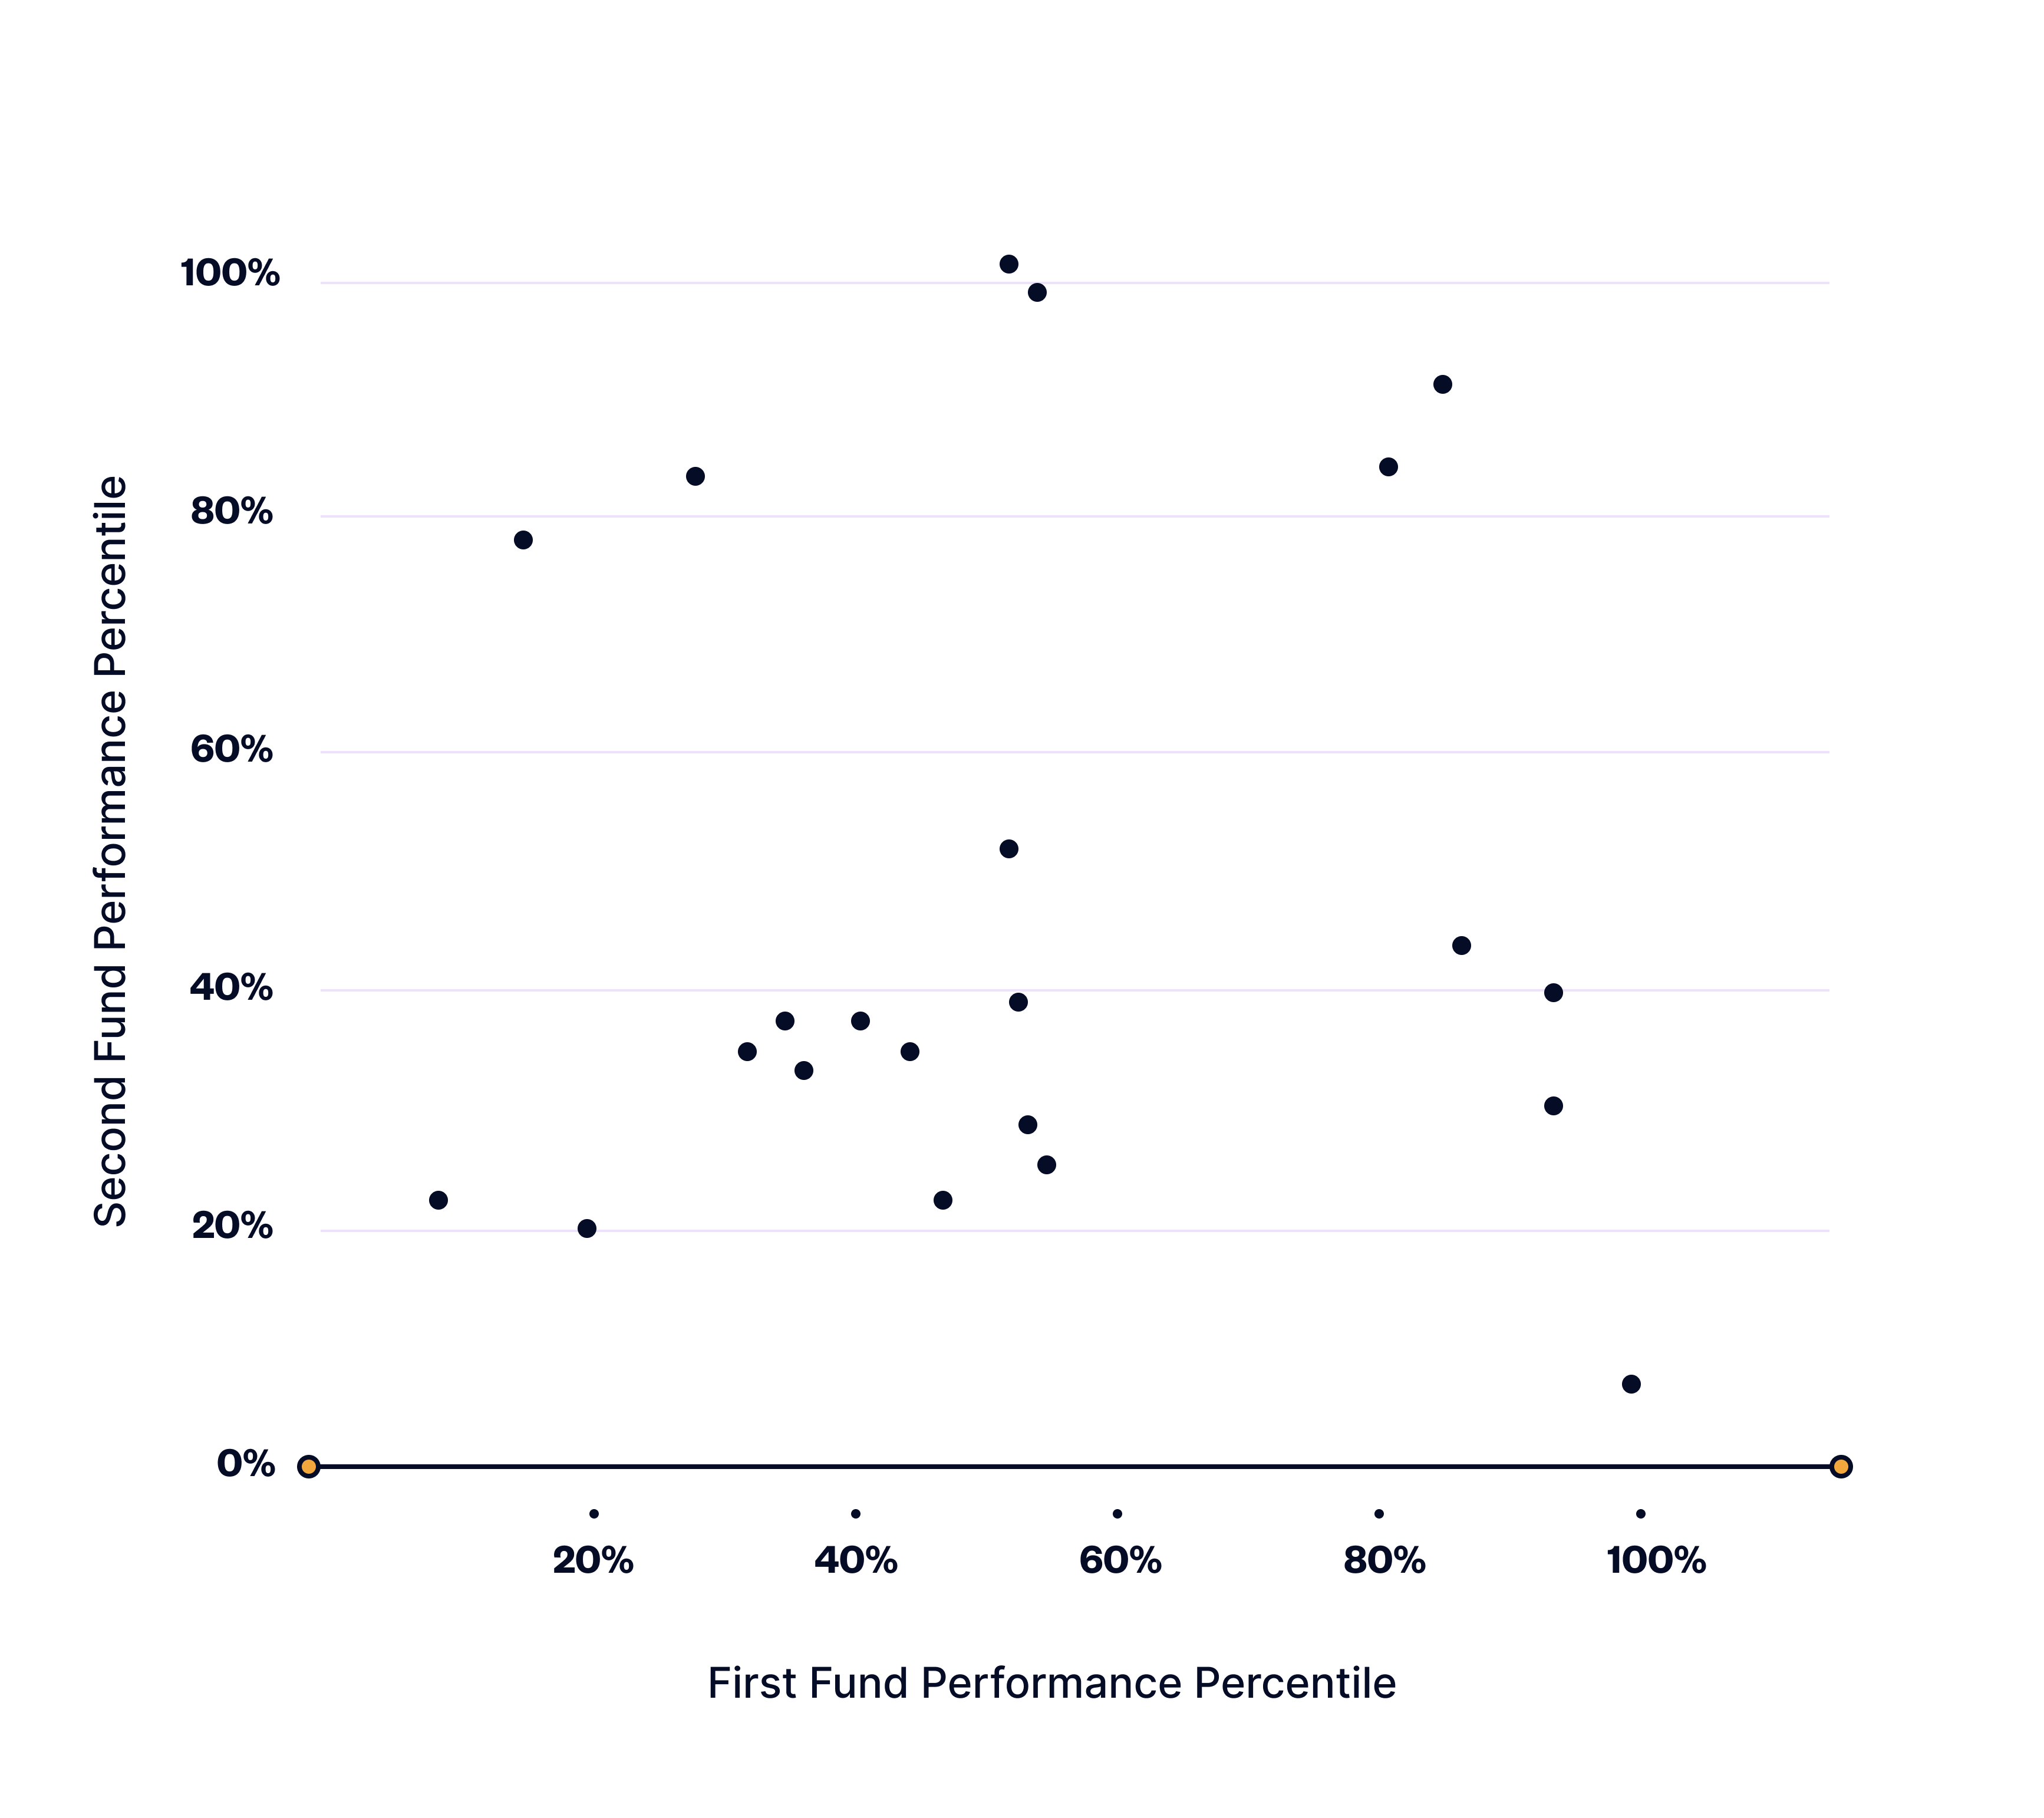 performance of first fund and performance of second fund